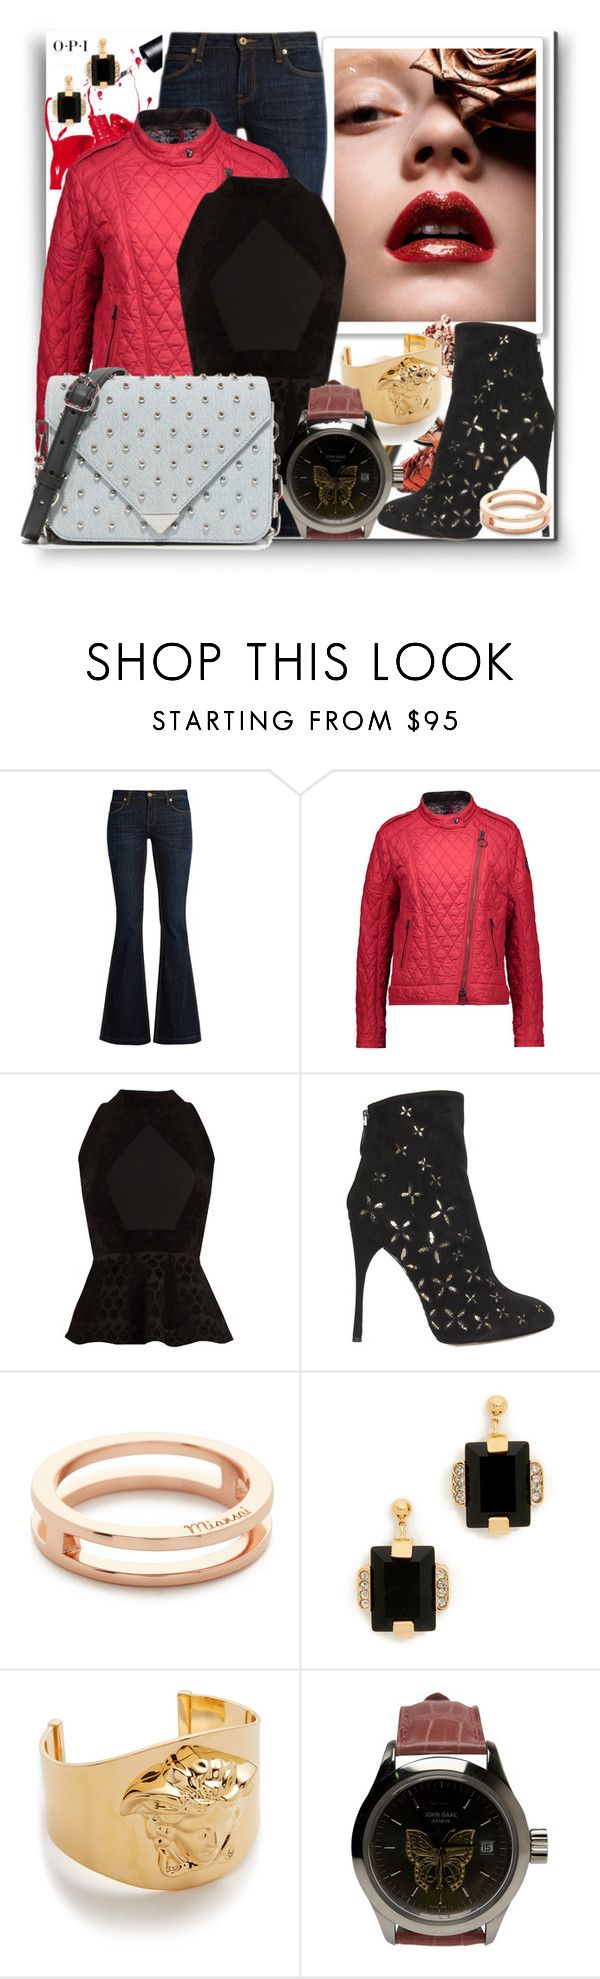 """""""An Awe with Peplum Top, Dark Wash Jeans & Quilted Jacket!!"""" by stylediva20 on Polyvore featuring OPI, Burberry, Belstaff, Roland Mouret, Alaïa, MIANSAI, Marni, Versace, John Isaac and Alexander Wang"""